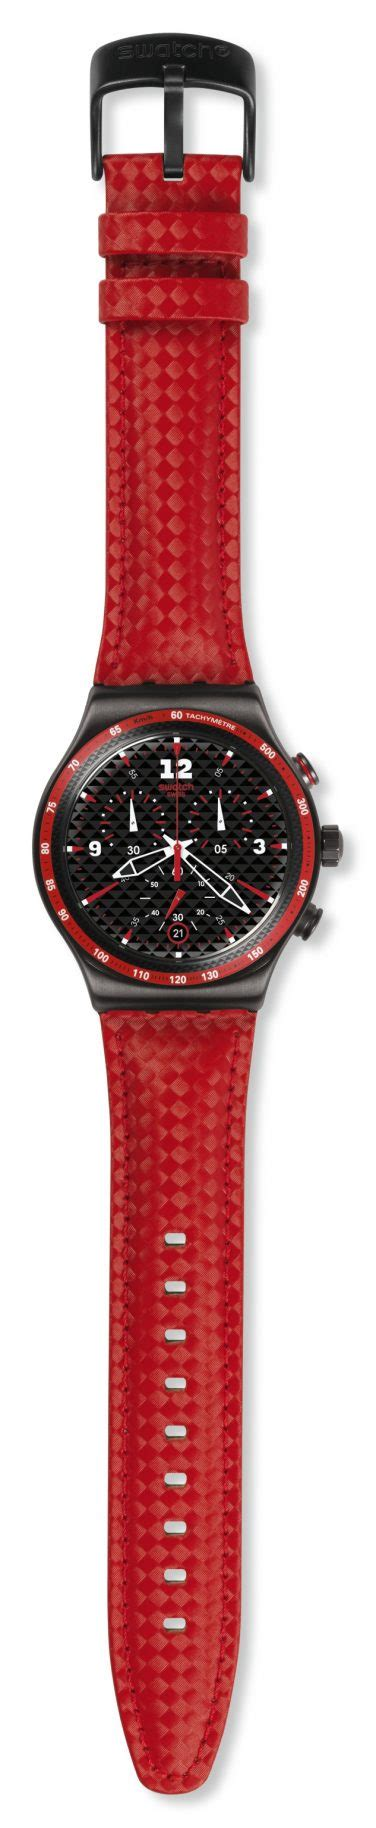 Swatch Rosso Fuoco Yvm401 swatch rosso fuoco uhr yvm401 nur 140 00